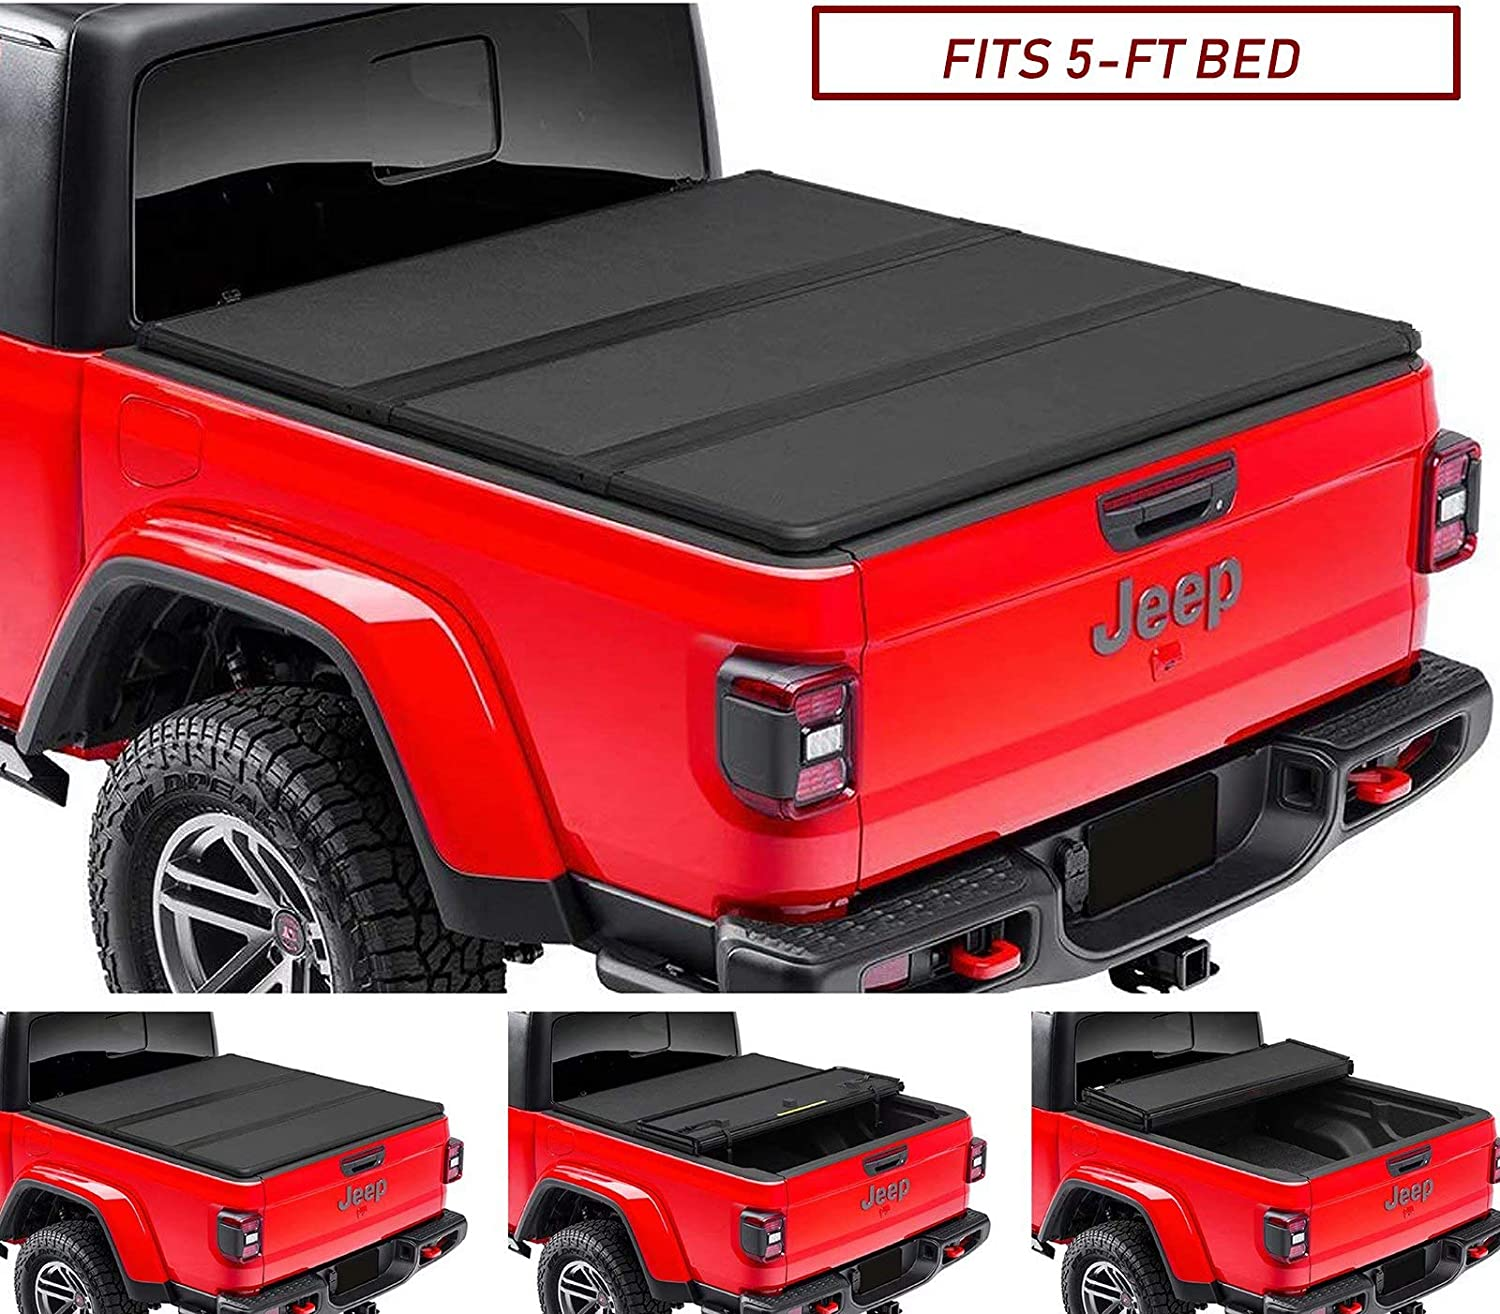 Kikito Professional FRP Hard Tri-Fold Truck Bed Tonneau Cover for 2020-2021 Gladiator JT 5ft (60.3in) Bed